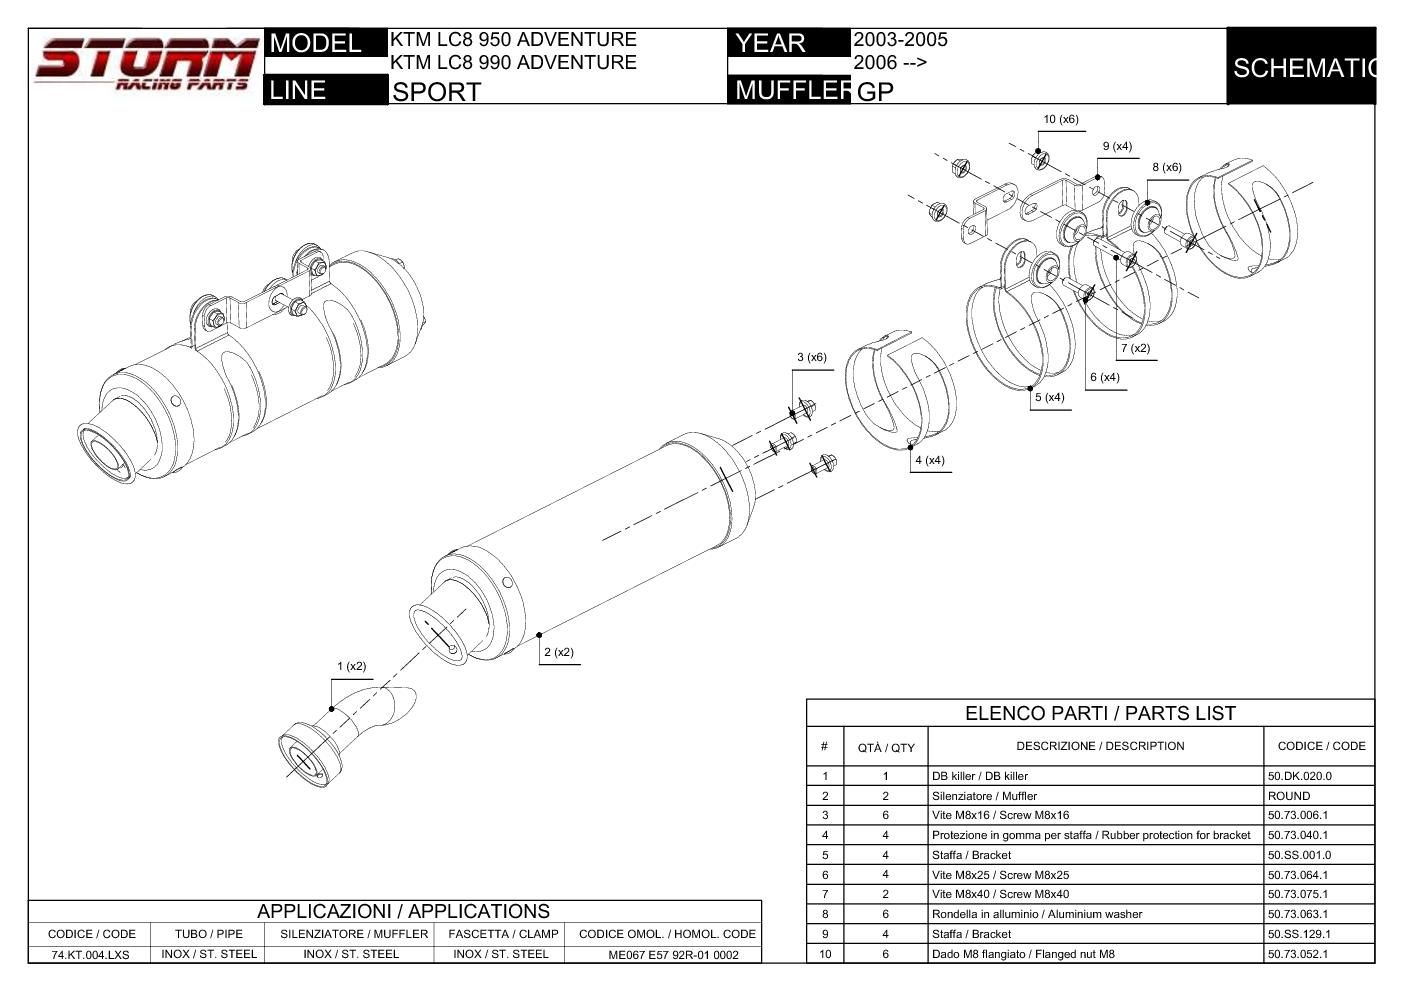 Exhaust Storm by Mivv Mufflers Gp Steel for Ktm Lc8 990